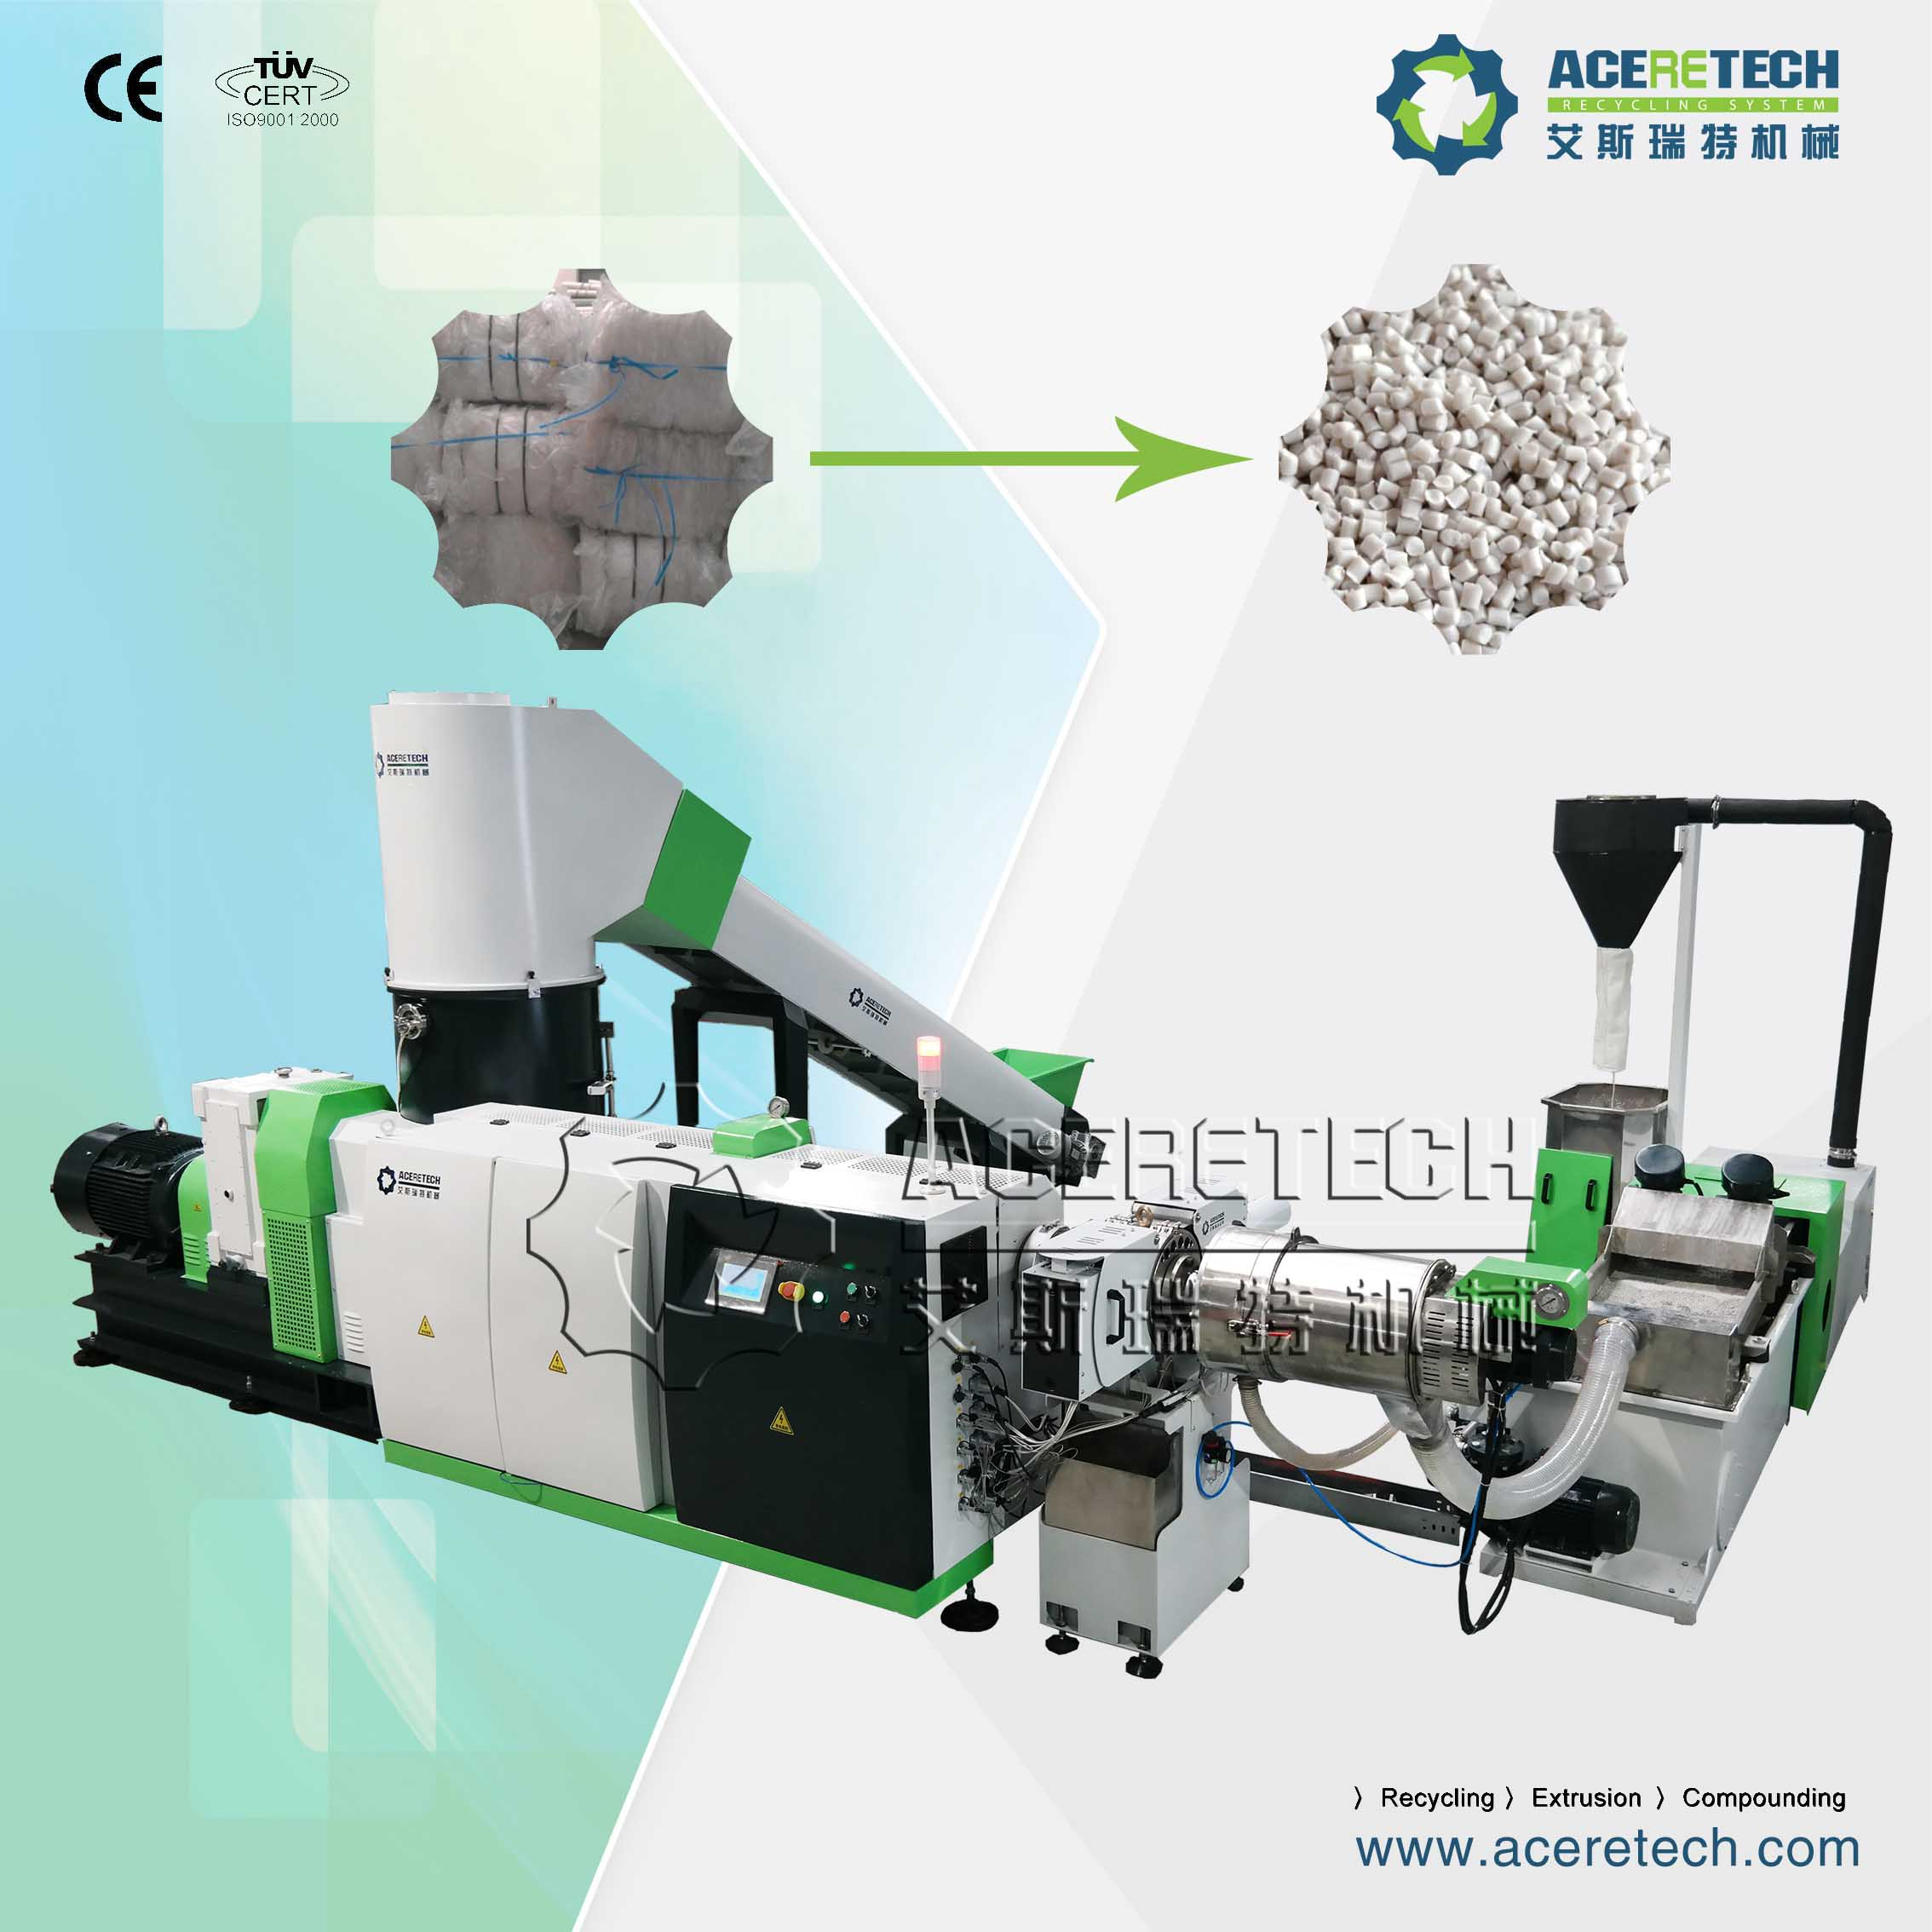 Plastic Recycling Technology - ACERETECH